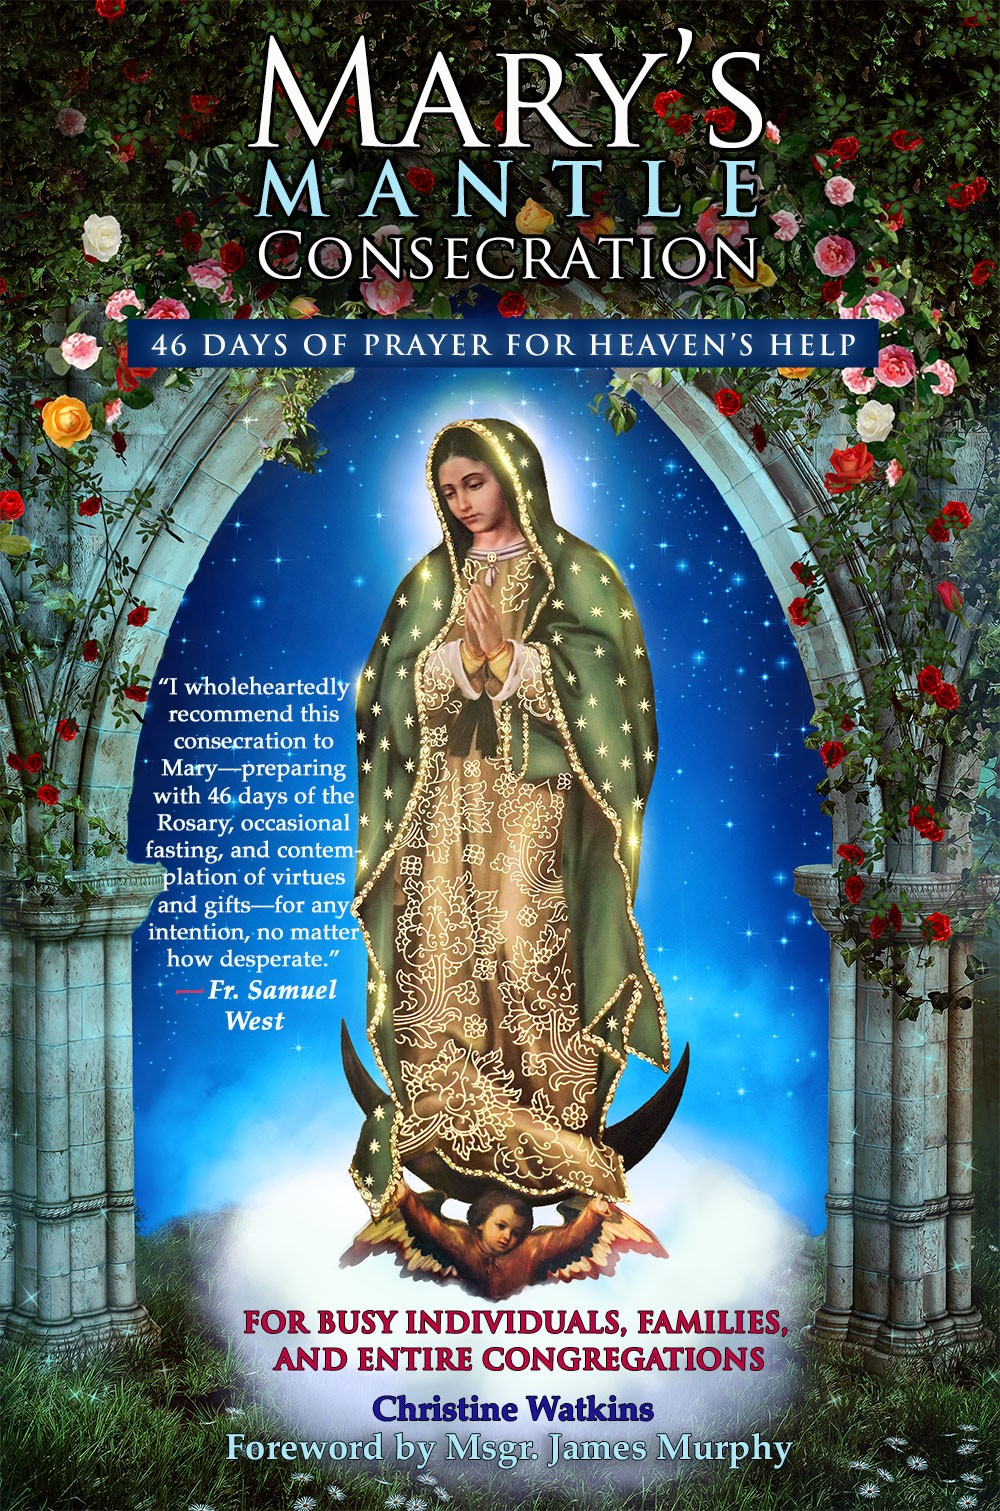 Mary's Mantle Consecration - Queen of Peace Media